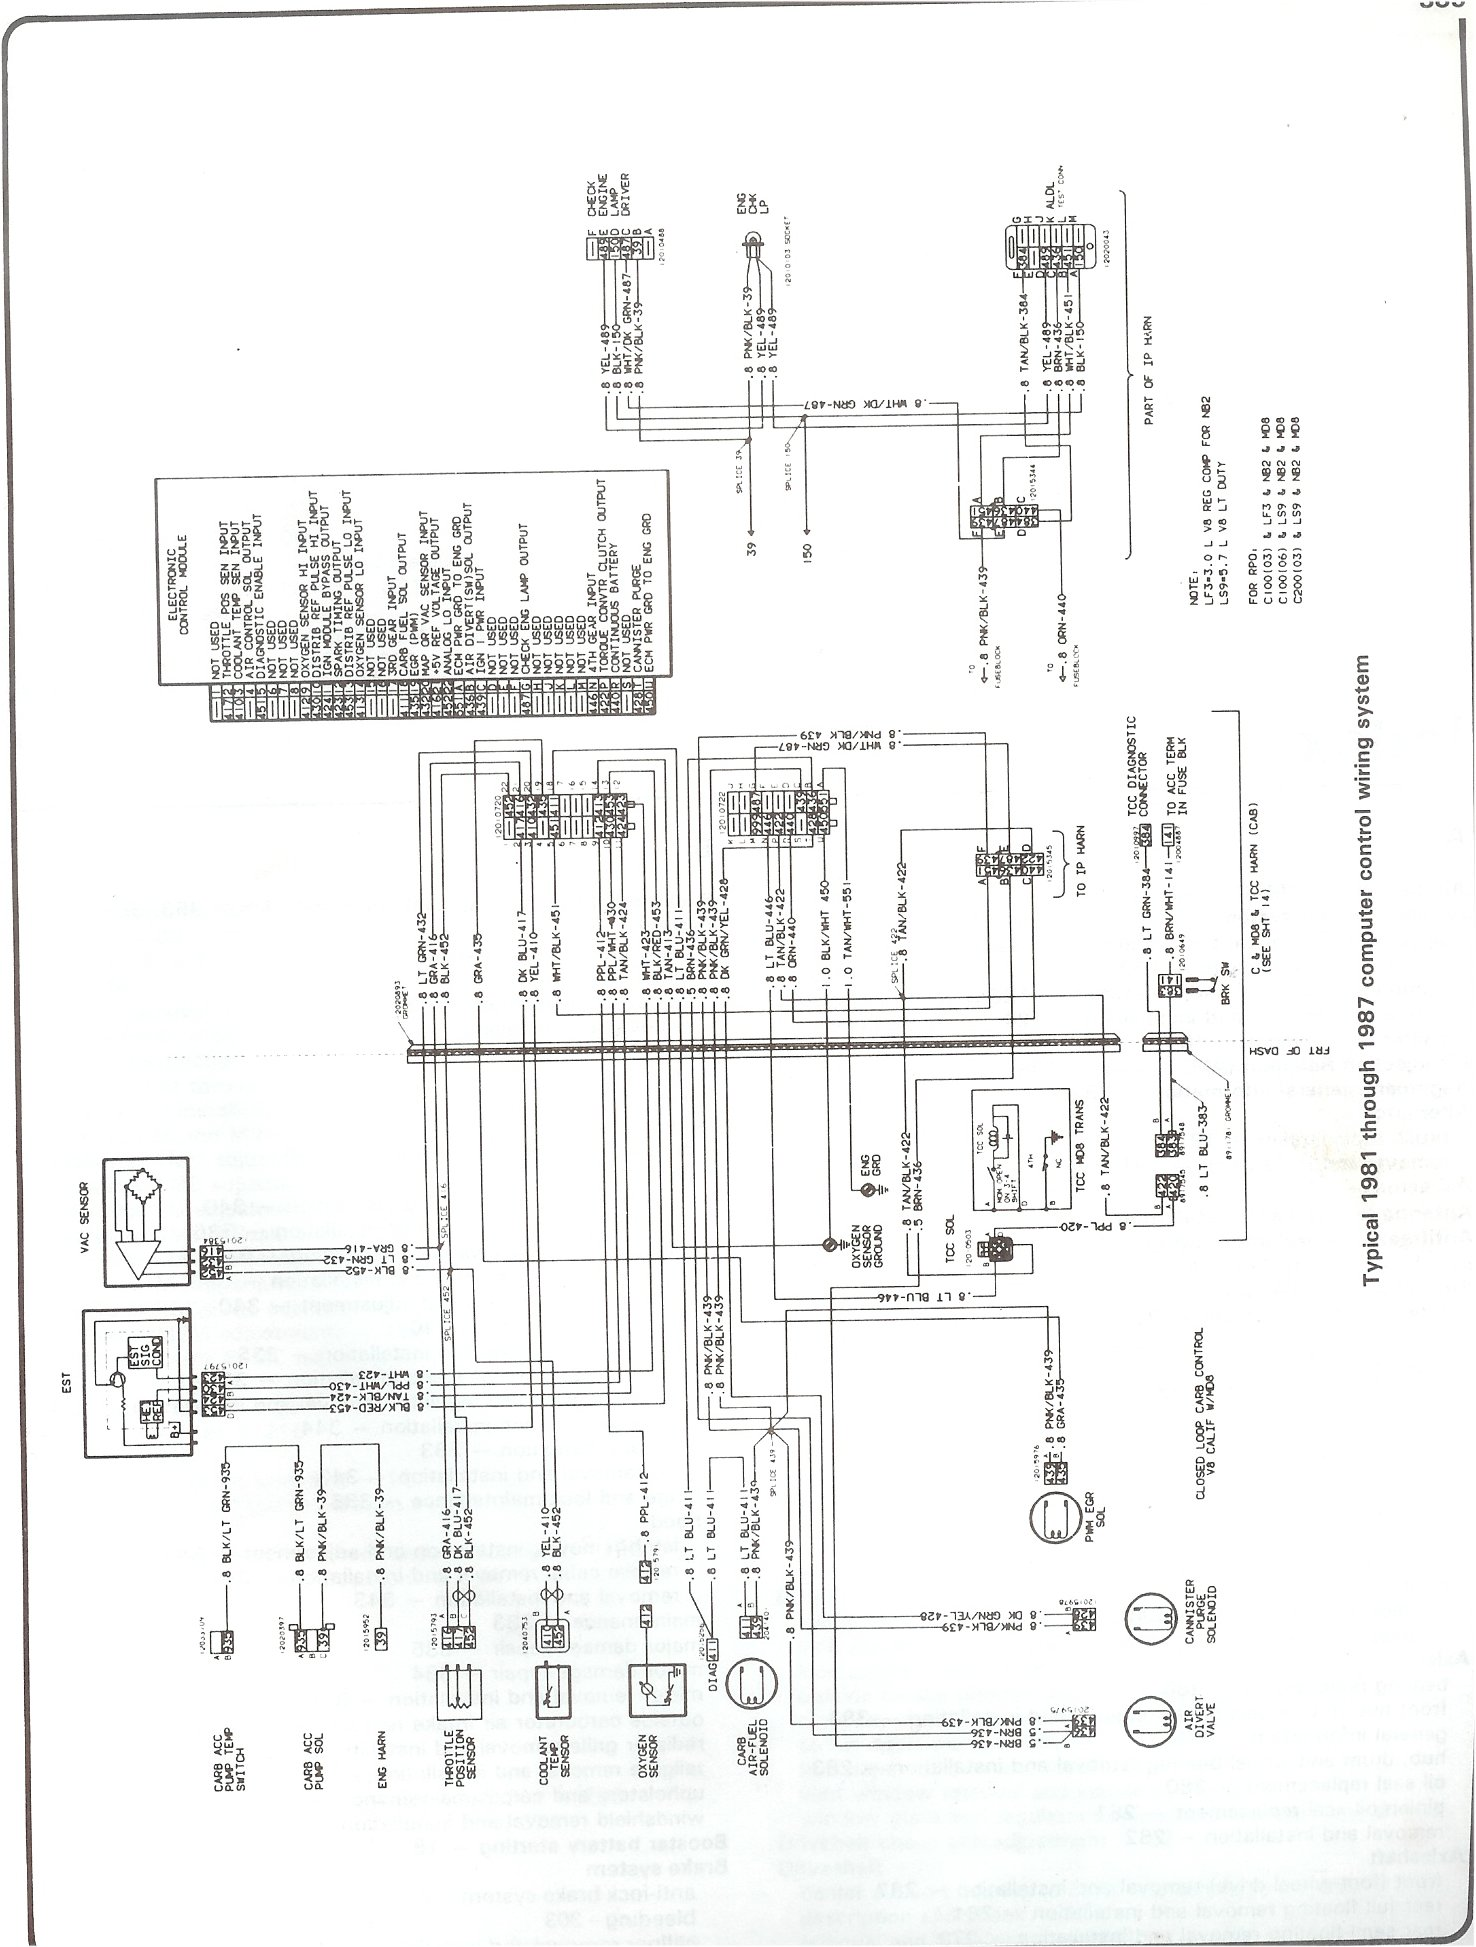 Ford Mustang Headlight Fog Light Wiring Diagram 94 95 together with Photo asp besides I Have To Hot Wire My Hei Chevelle Tech With Regard To 1964 Chevelle Fuse Box further 361 as well Cj3 Wiring Diagram. on 1974 corvette wiring diagram for dash